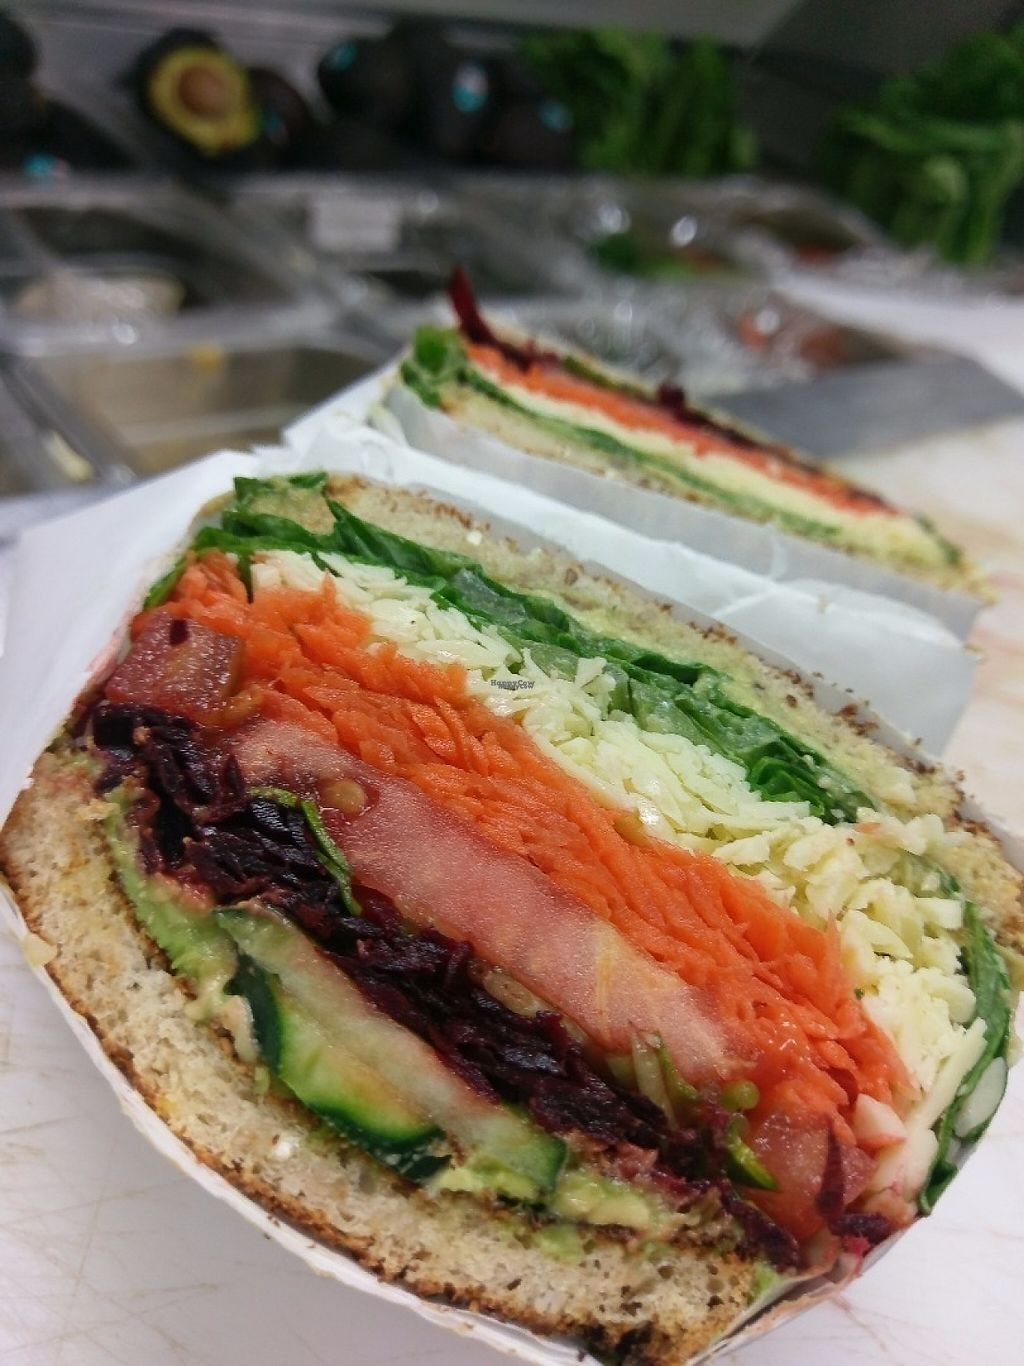 """Photo of Nutrition Shoppe Juice and Sandwich Bar  by <a href=""""/members/profile/Ricks"""">Ricks</a> <br/>Veggie sandwich <br/> April 9, 2017  - <a href='/contact/abuse/image/37007/246265'>Report</a>"""